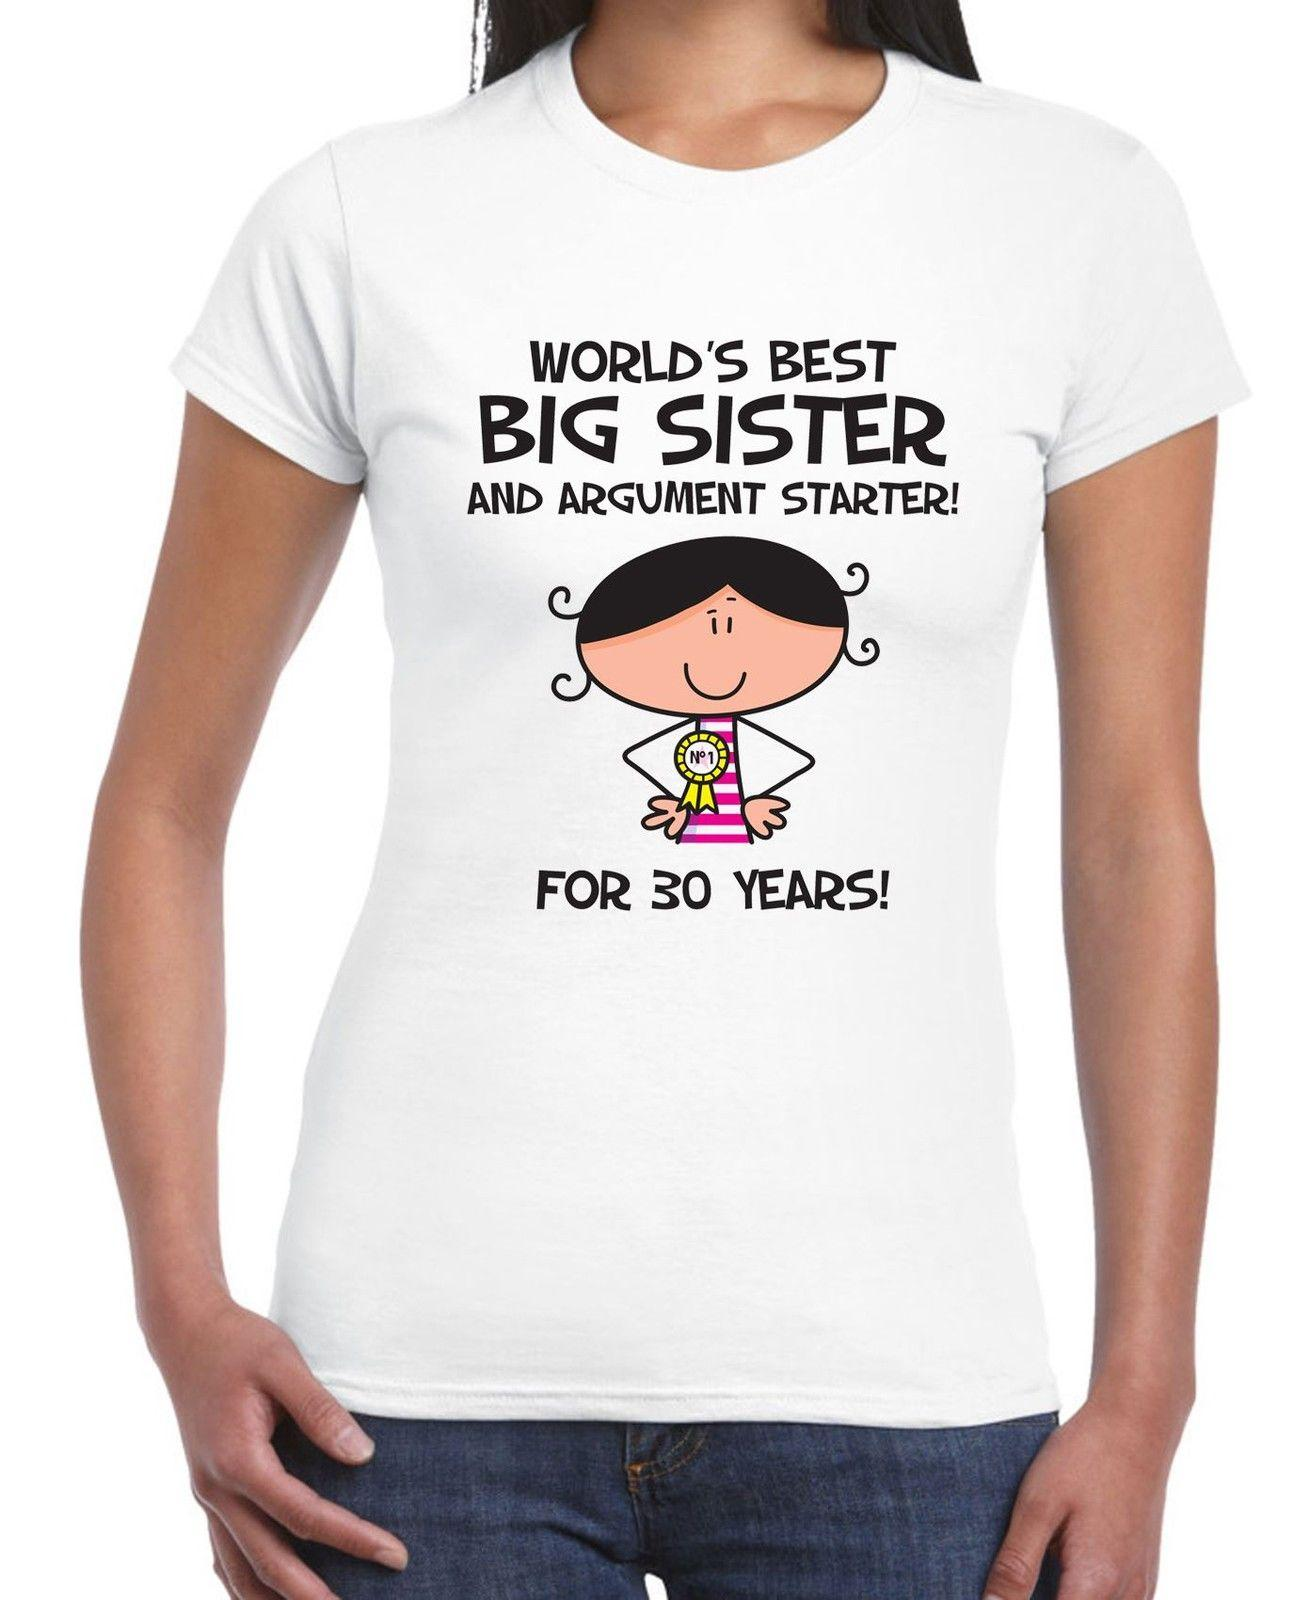 Worlds Best Big Sister WomenS 30th Birthday Present T Shirt Gift Canada 2018 From Designtshirts201806 CAD 1409